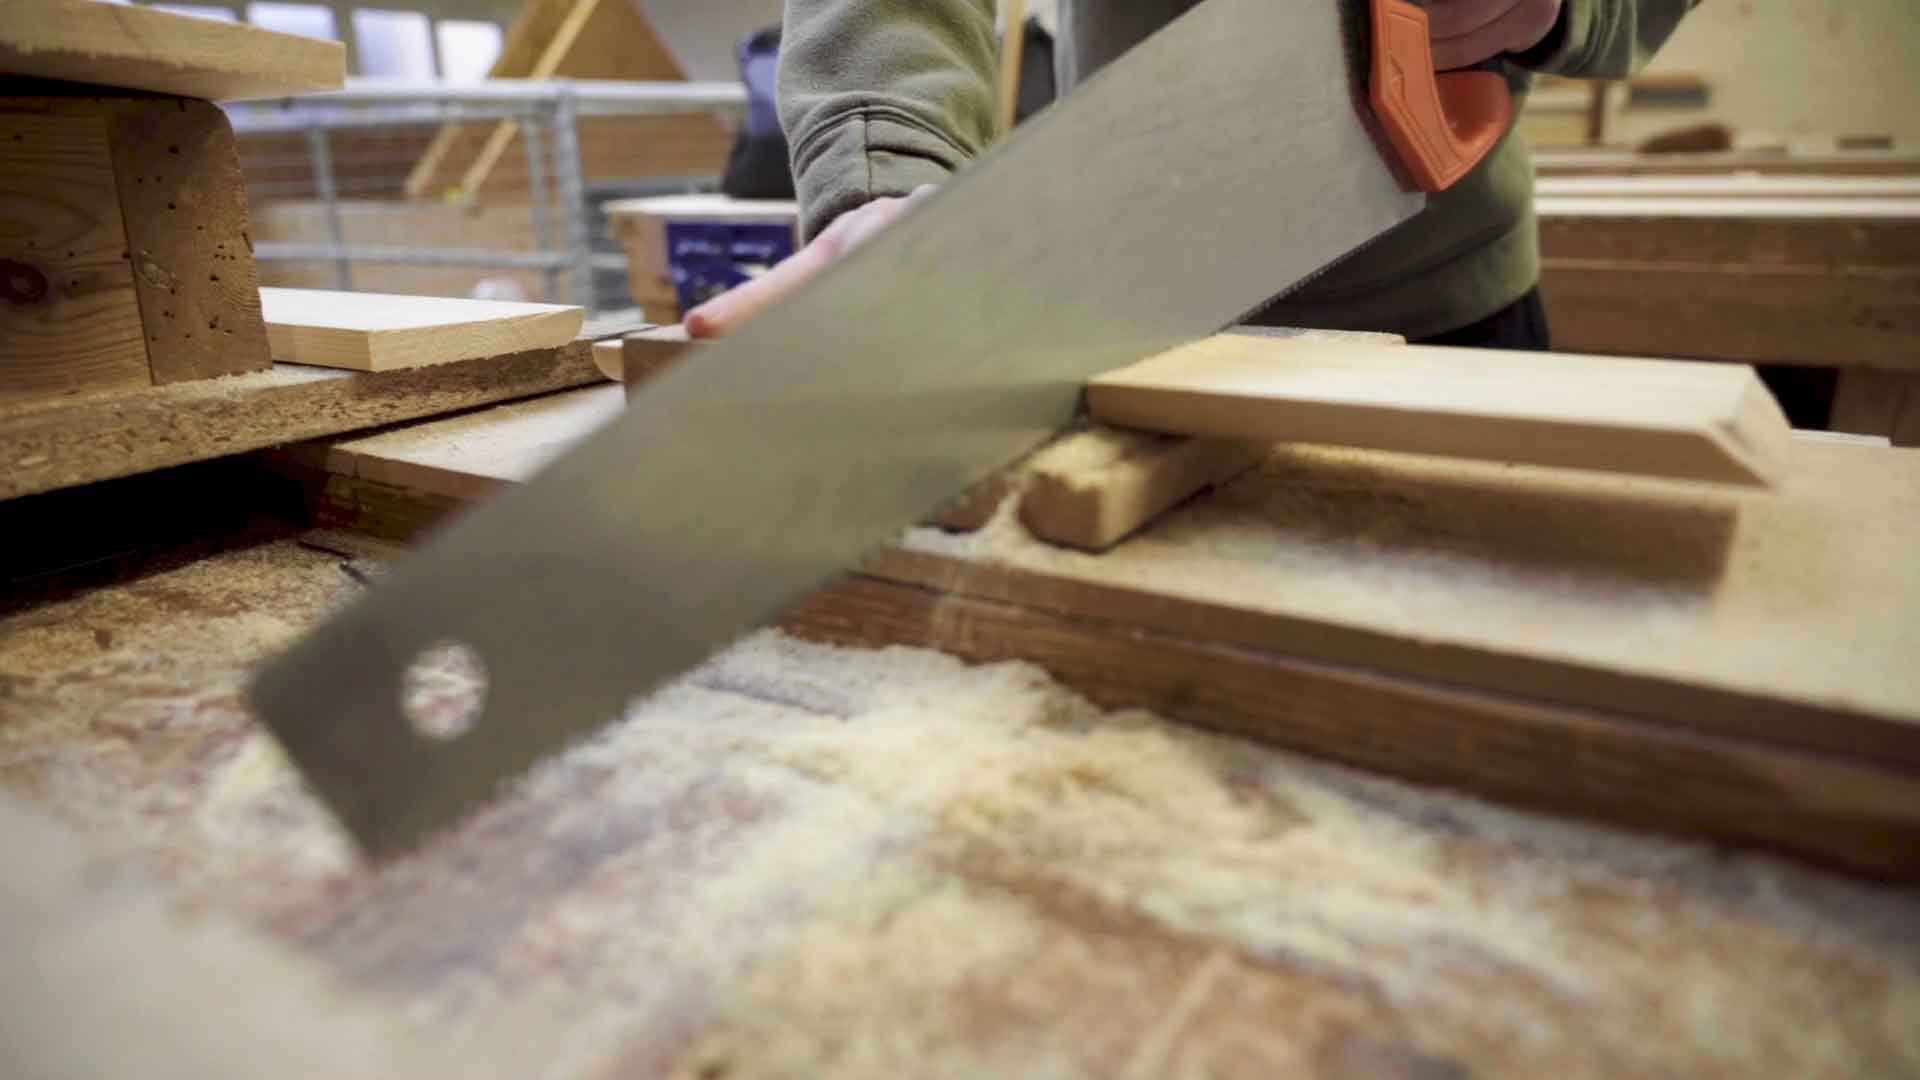 Level 2 Diploma in Carpentry and Joinery and NVQ in Wood Occupations